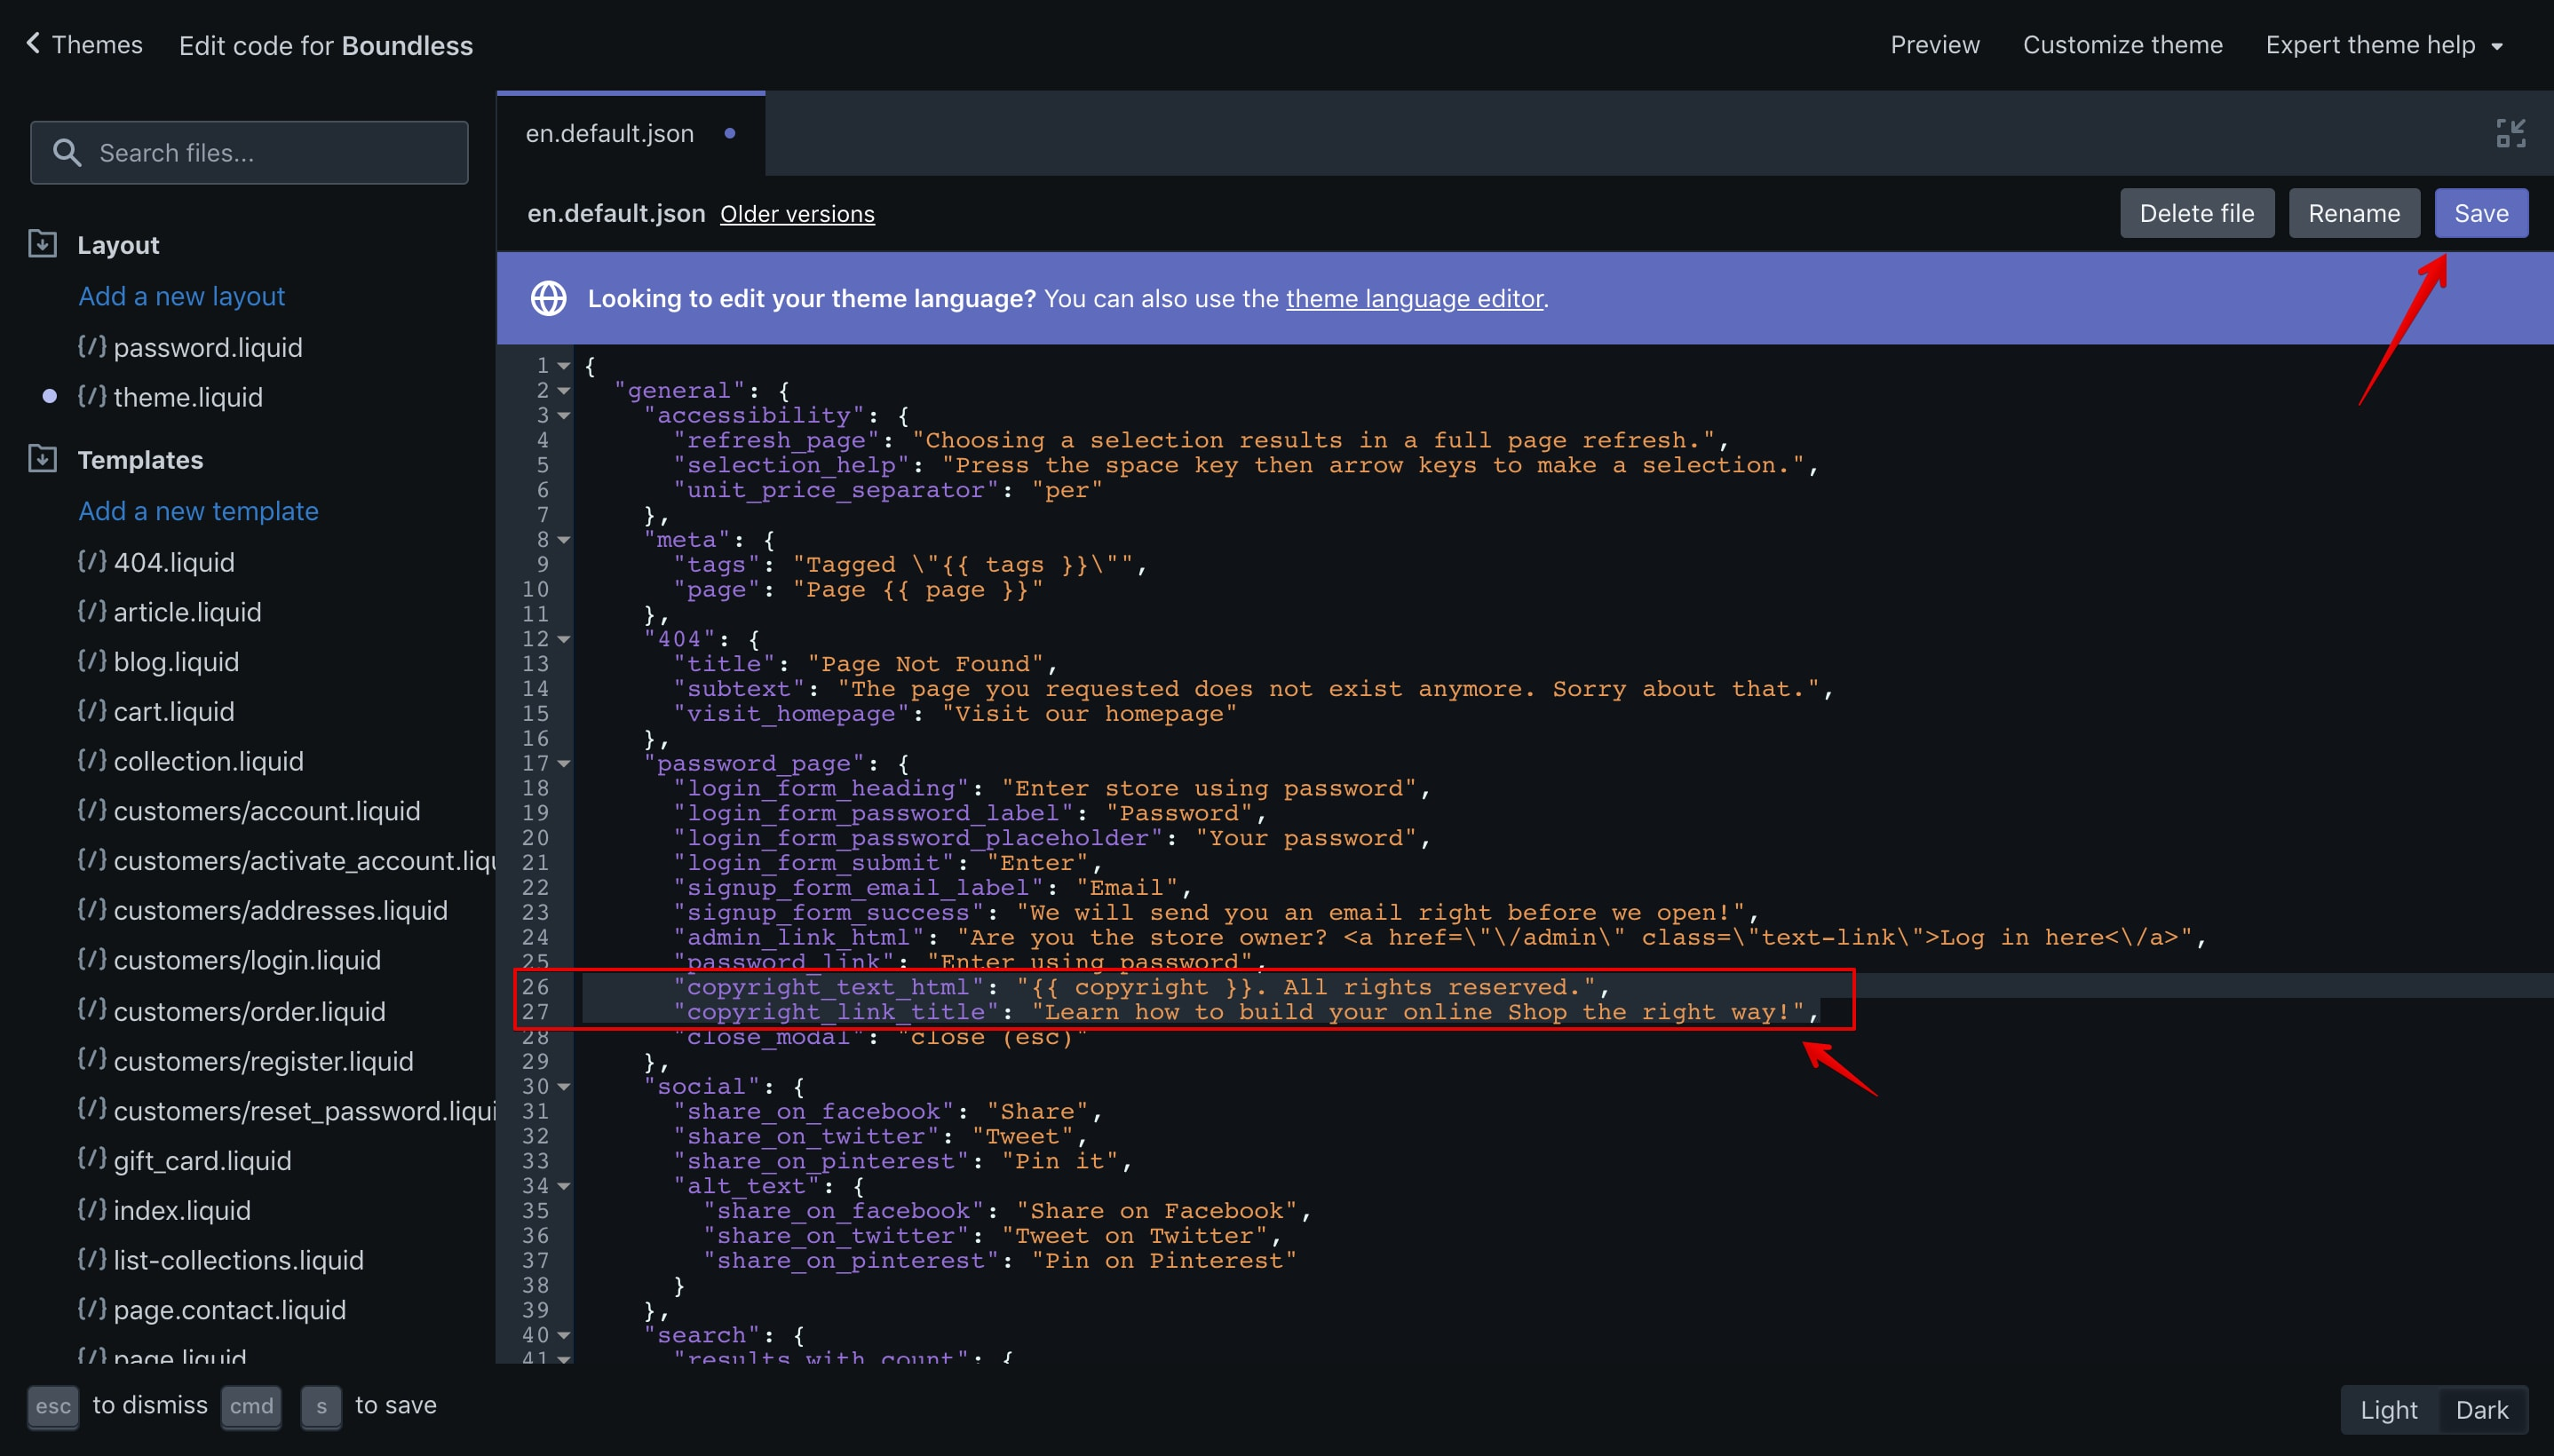 Boundless theme offline page copyright new code in the code editor.